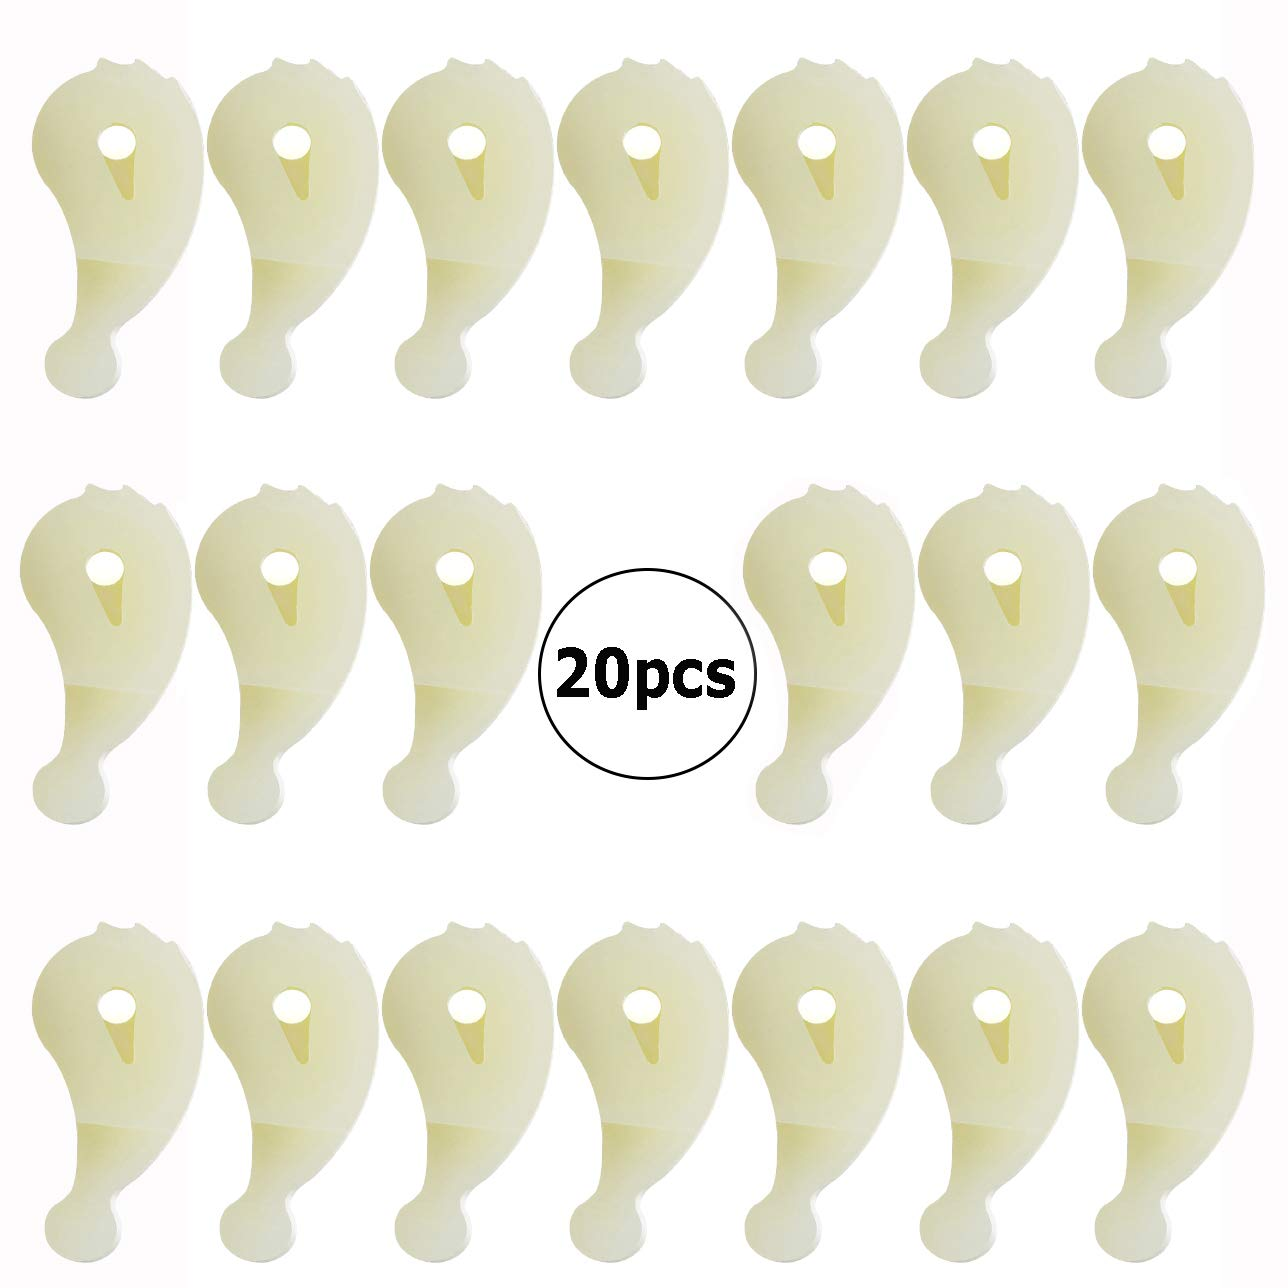 20 Pieces 80040 Washer Agitator Dog Replacement Kit for Whirlpool and Kenmore Washer